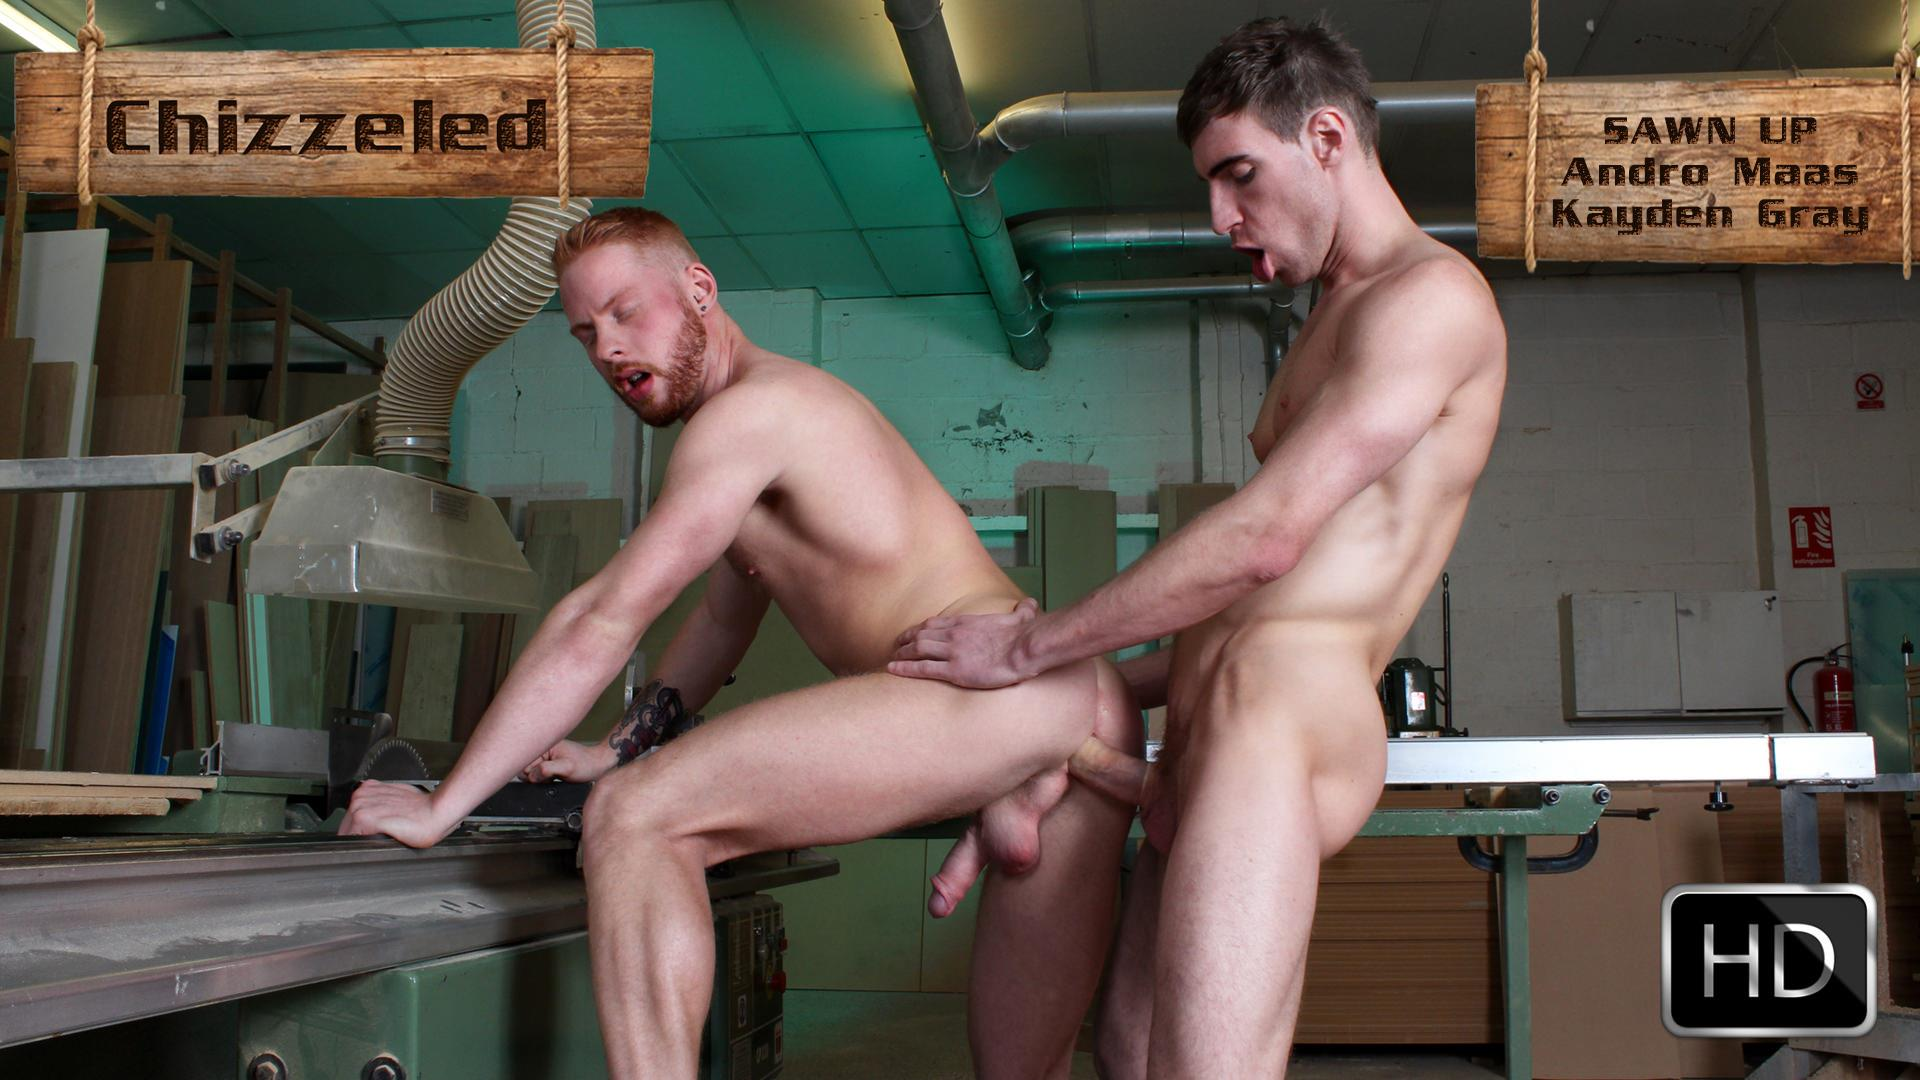 UK Hot Jocks Kayden Gray Andro Maas Redhead Getting Fucked By Big Uncut Cock Amateur Gay Porn 22 Hung Ginger Takes Kayden Grays Huge Uncut Cock Up The Ass